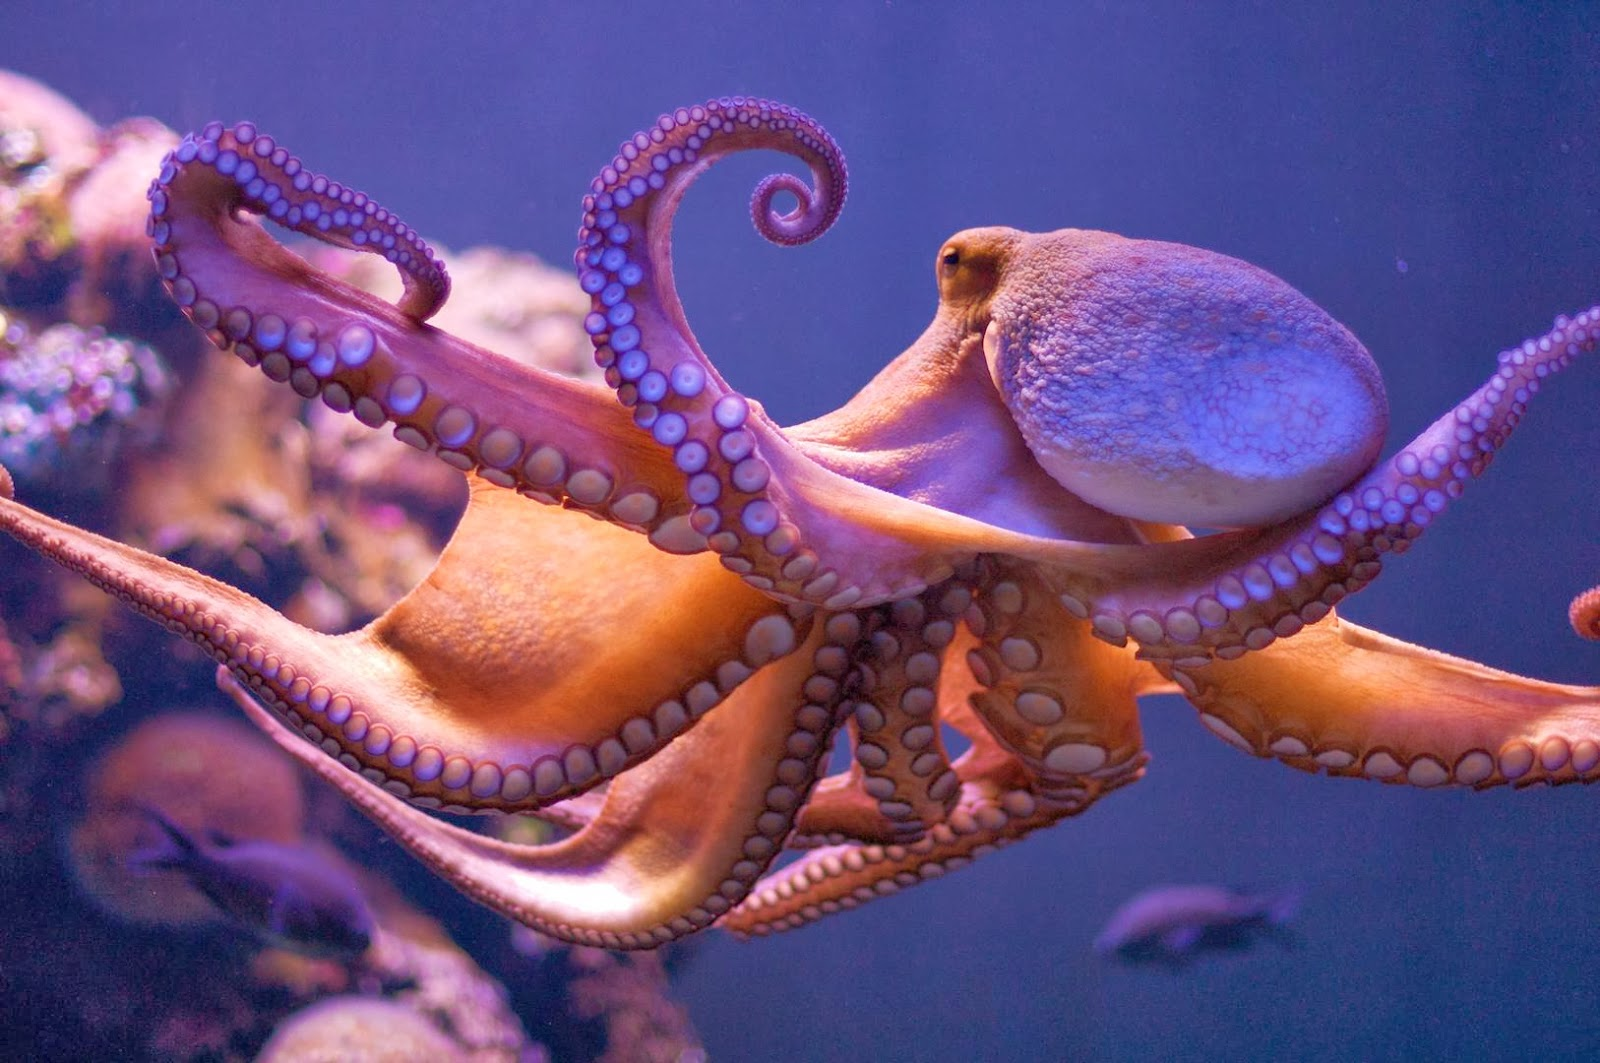 real octopus wallpaper - photo #13